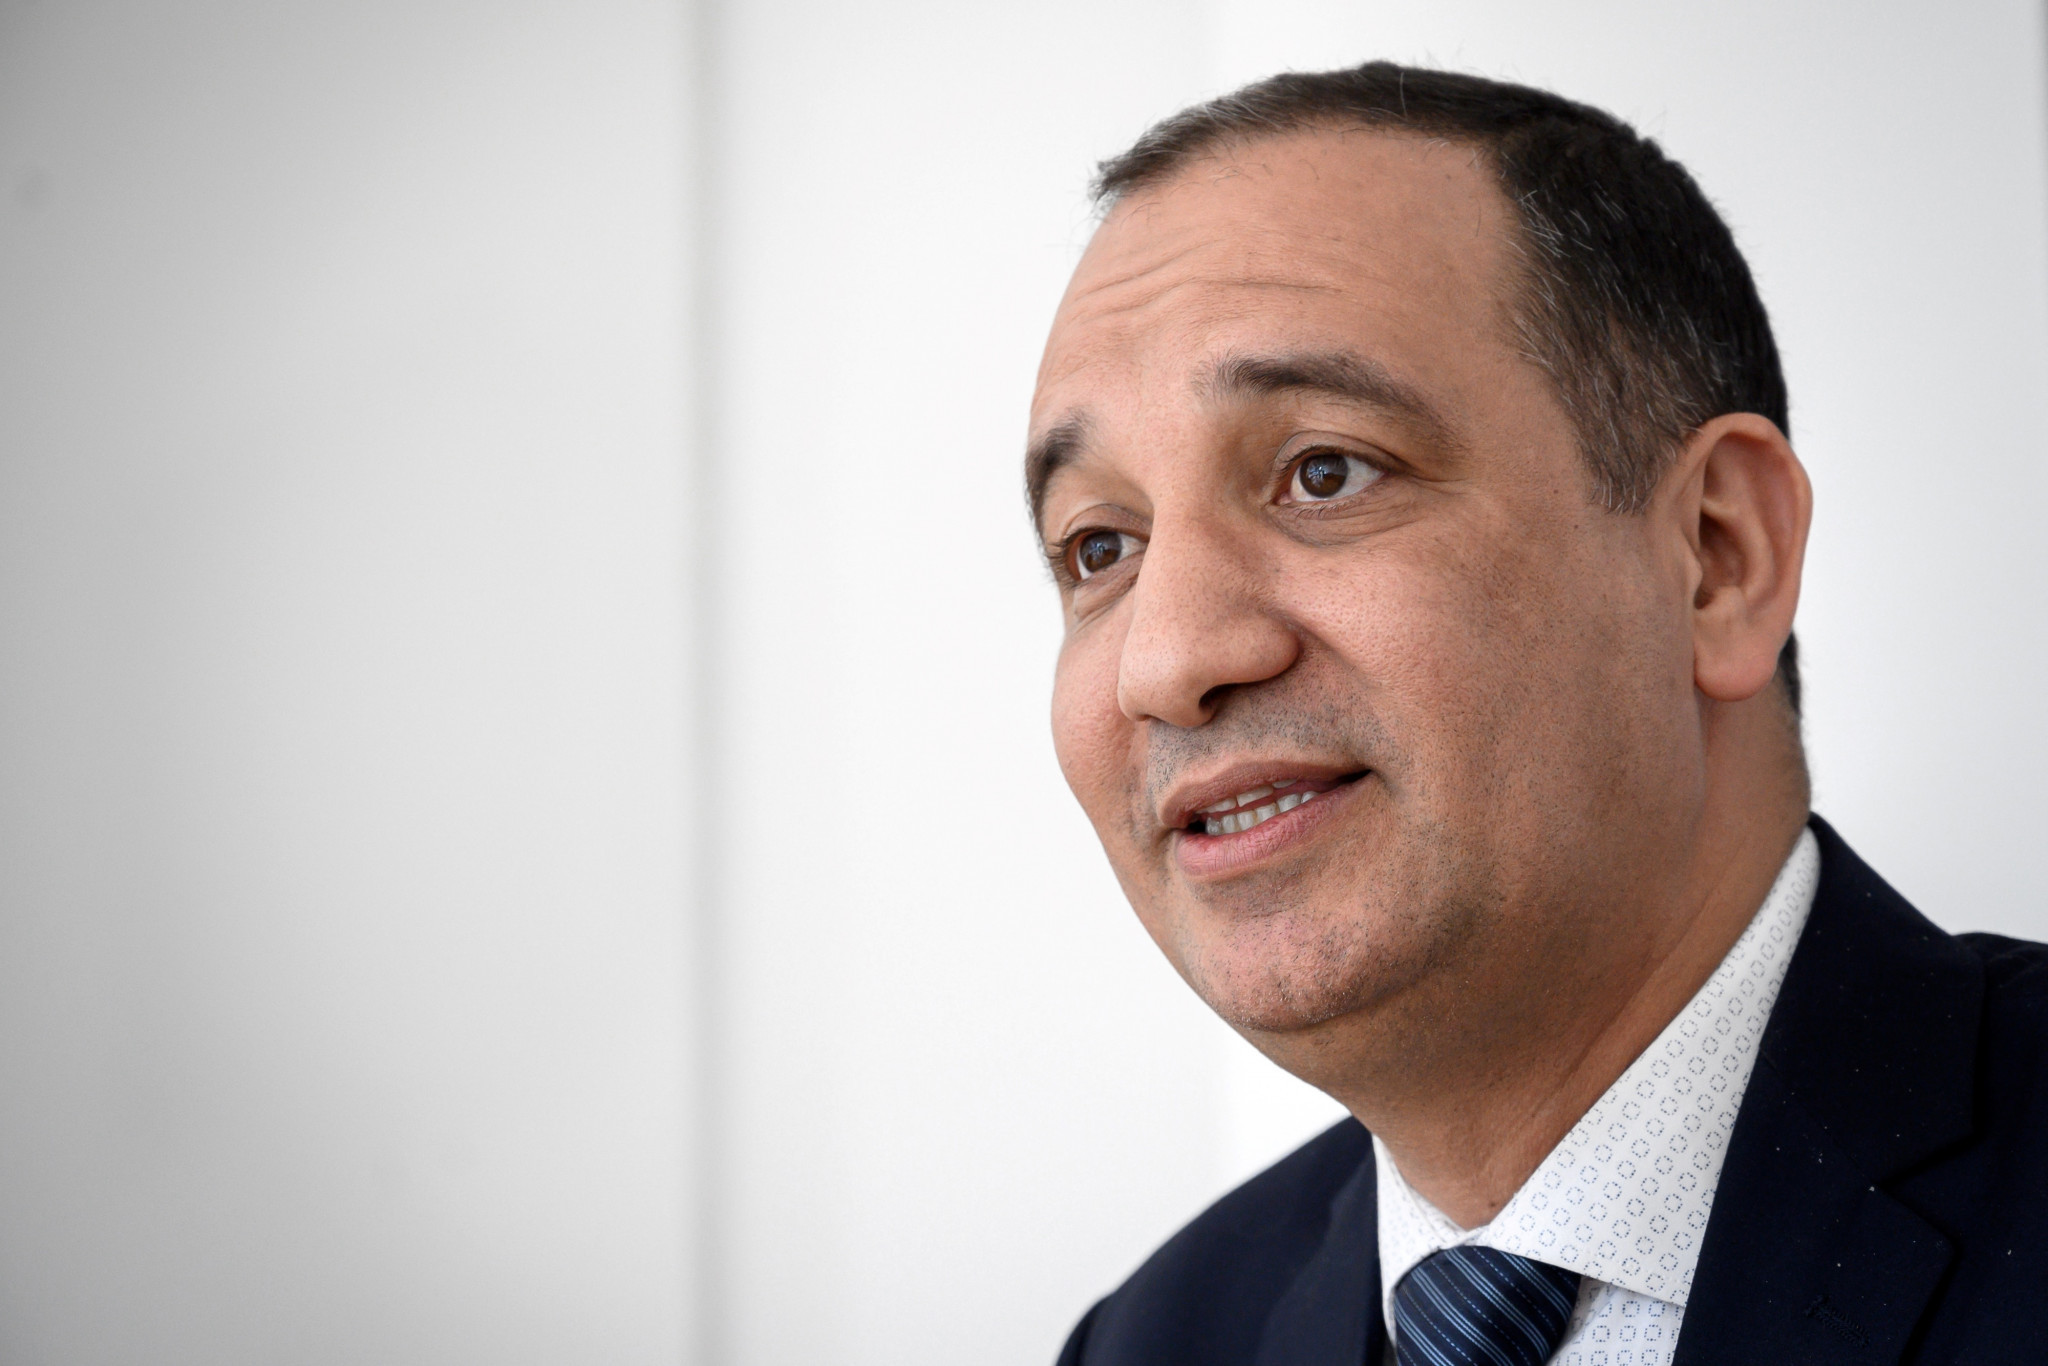 AIBA Interim President Mohamed Moustahsane claimed the world governing body's Congress had been postponed until March to allow more time to draft new statutes ©Getty Images